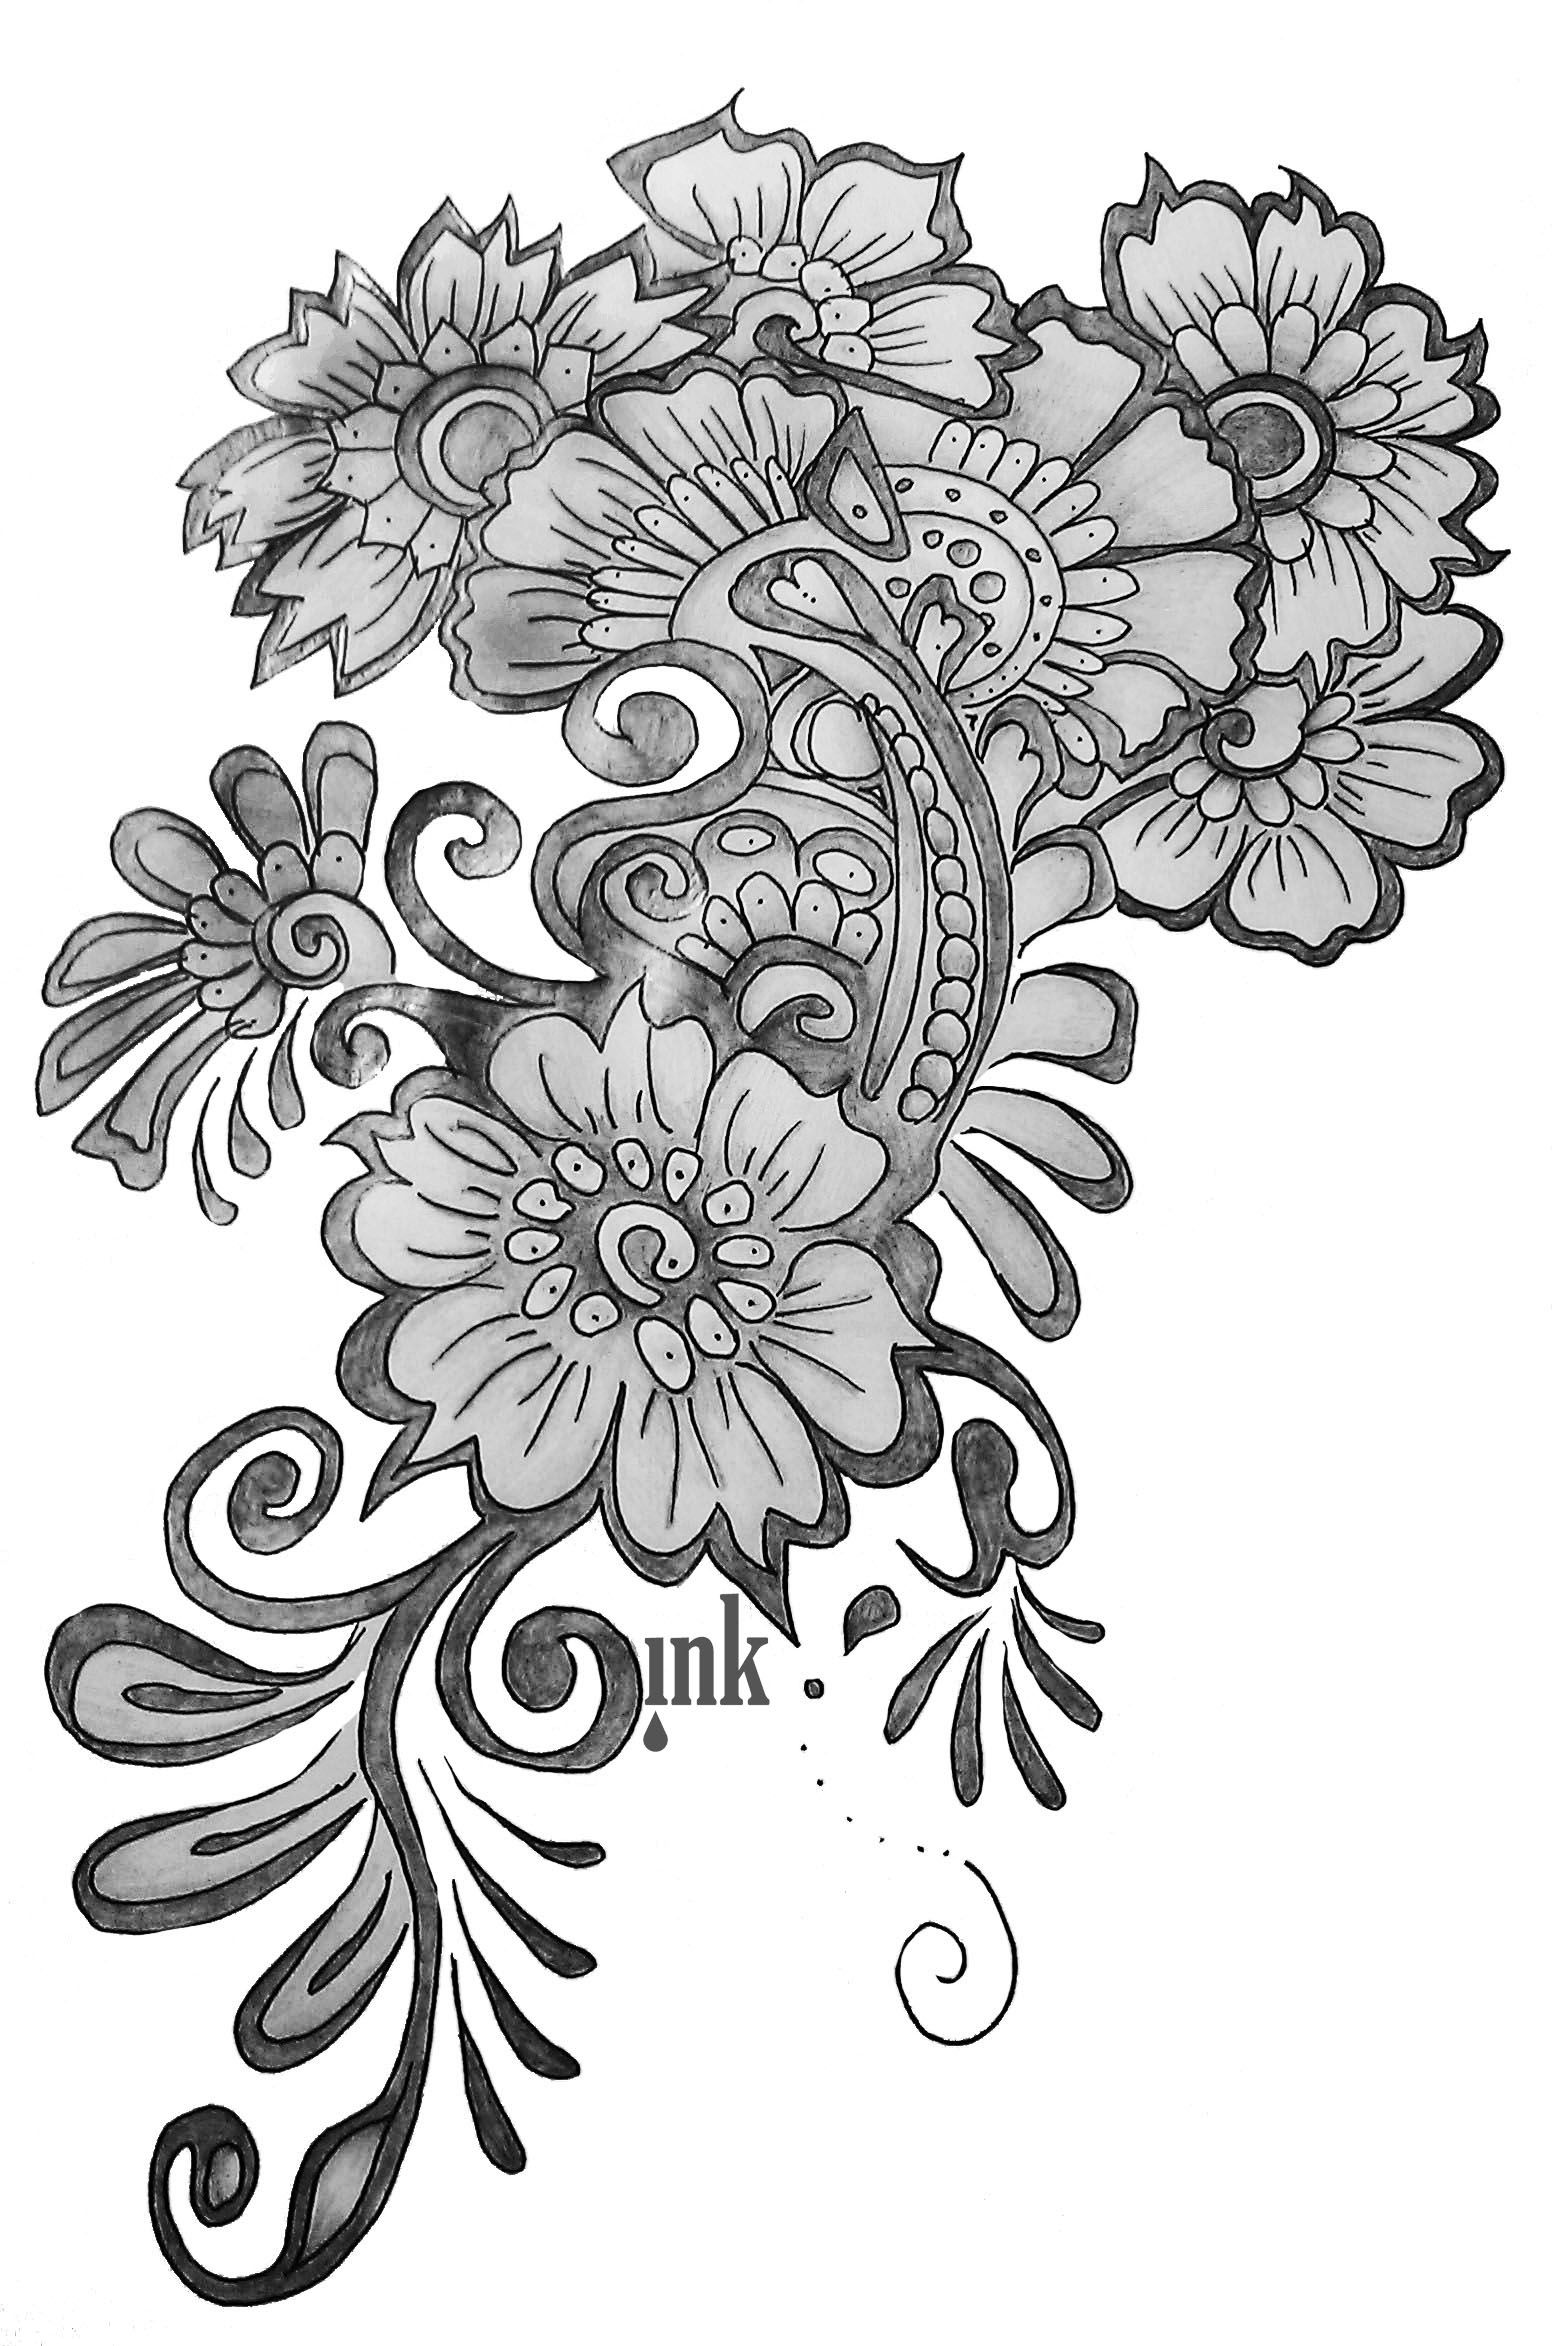 Flower design drawing how to draw a beautiful flower design drawing flower design drawing how to draw a beautiful flower design drawing flower designs free izmirmasajfo